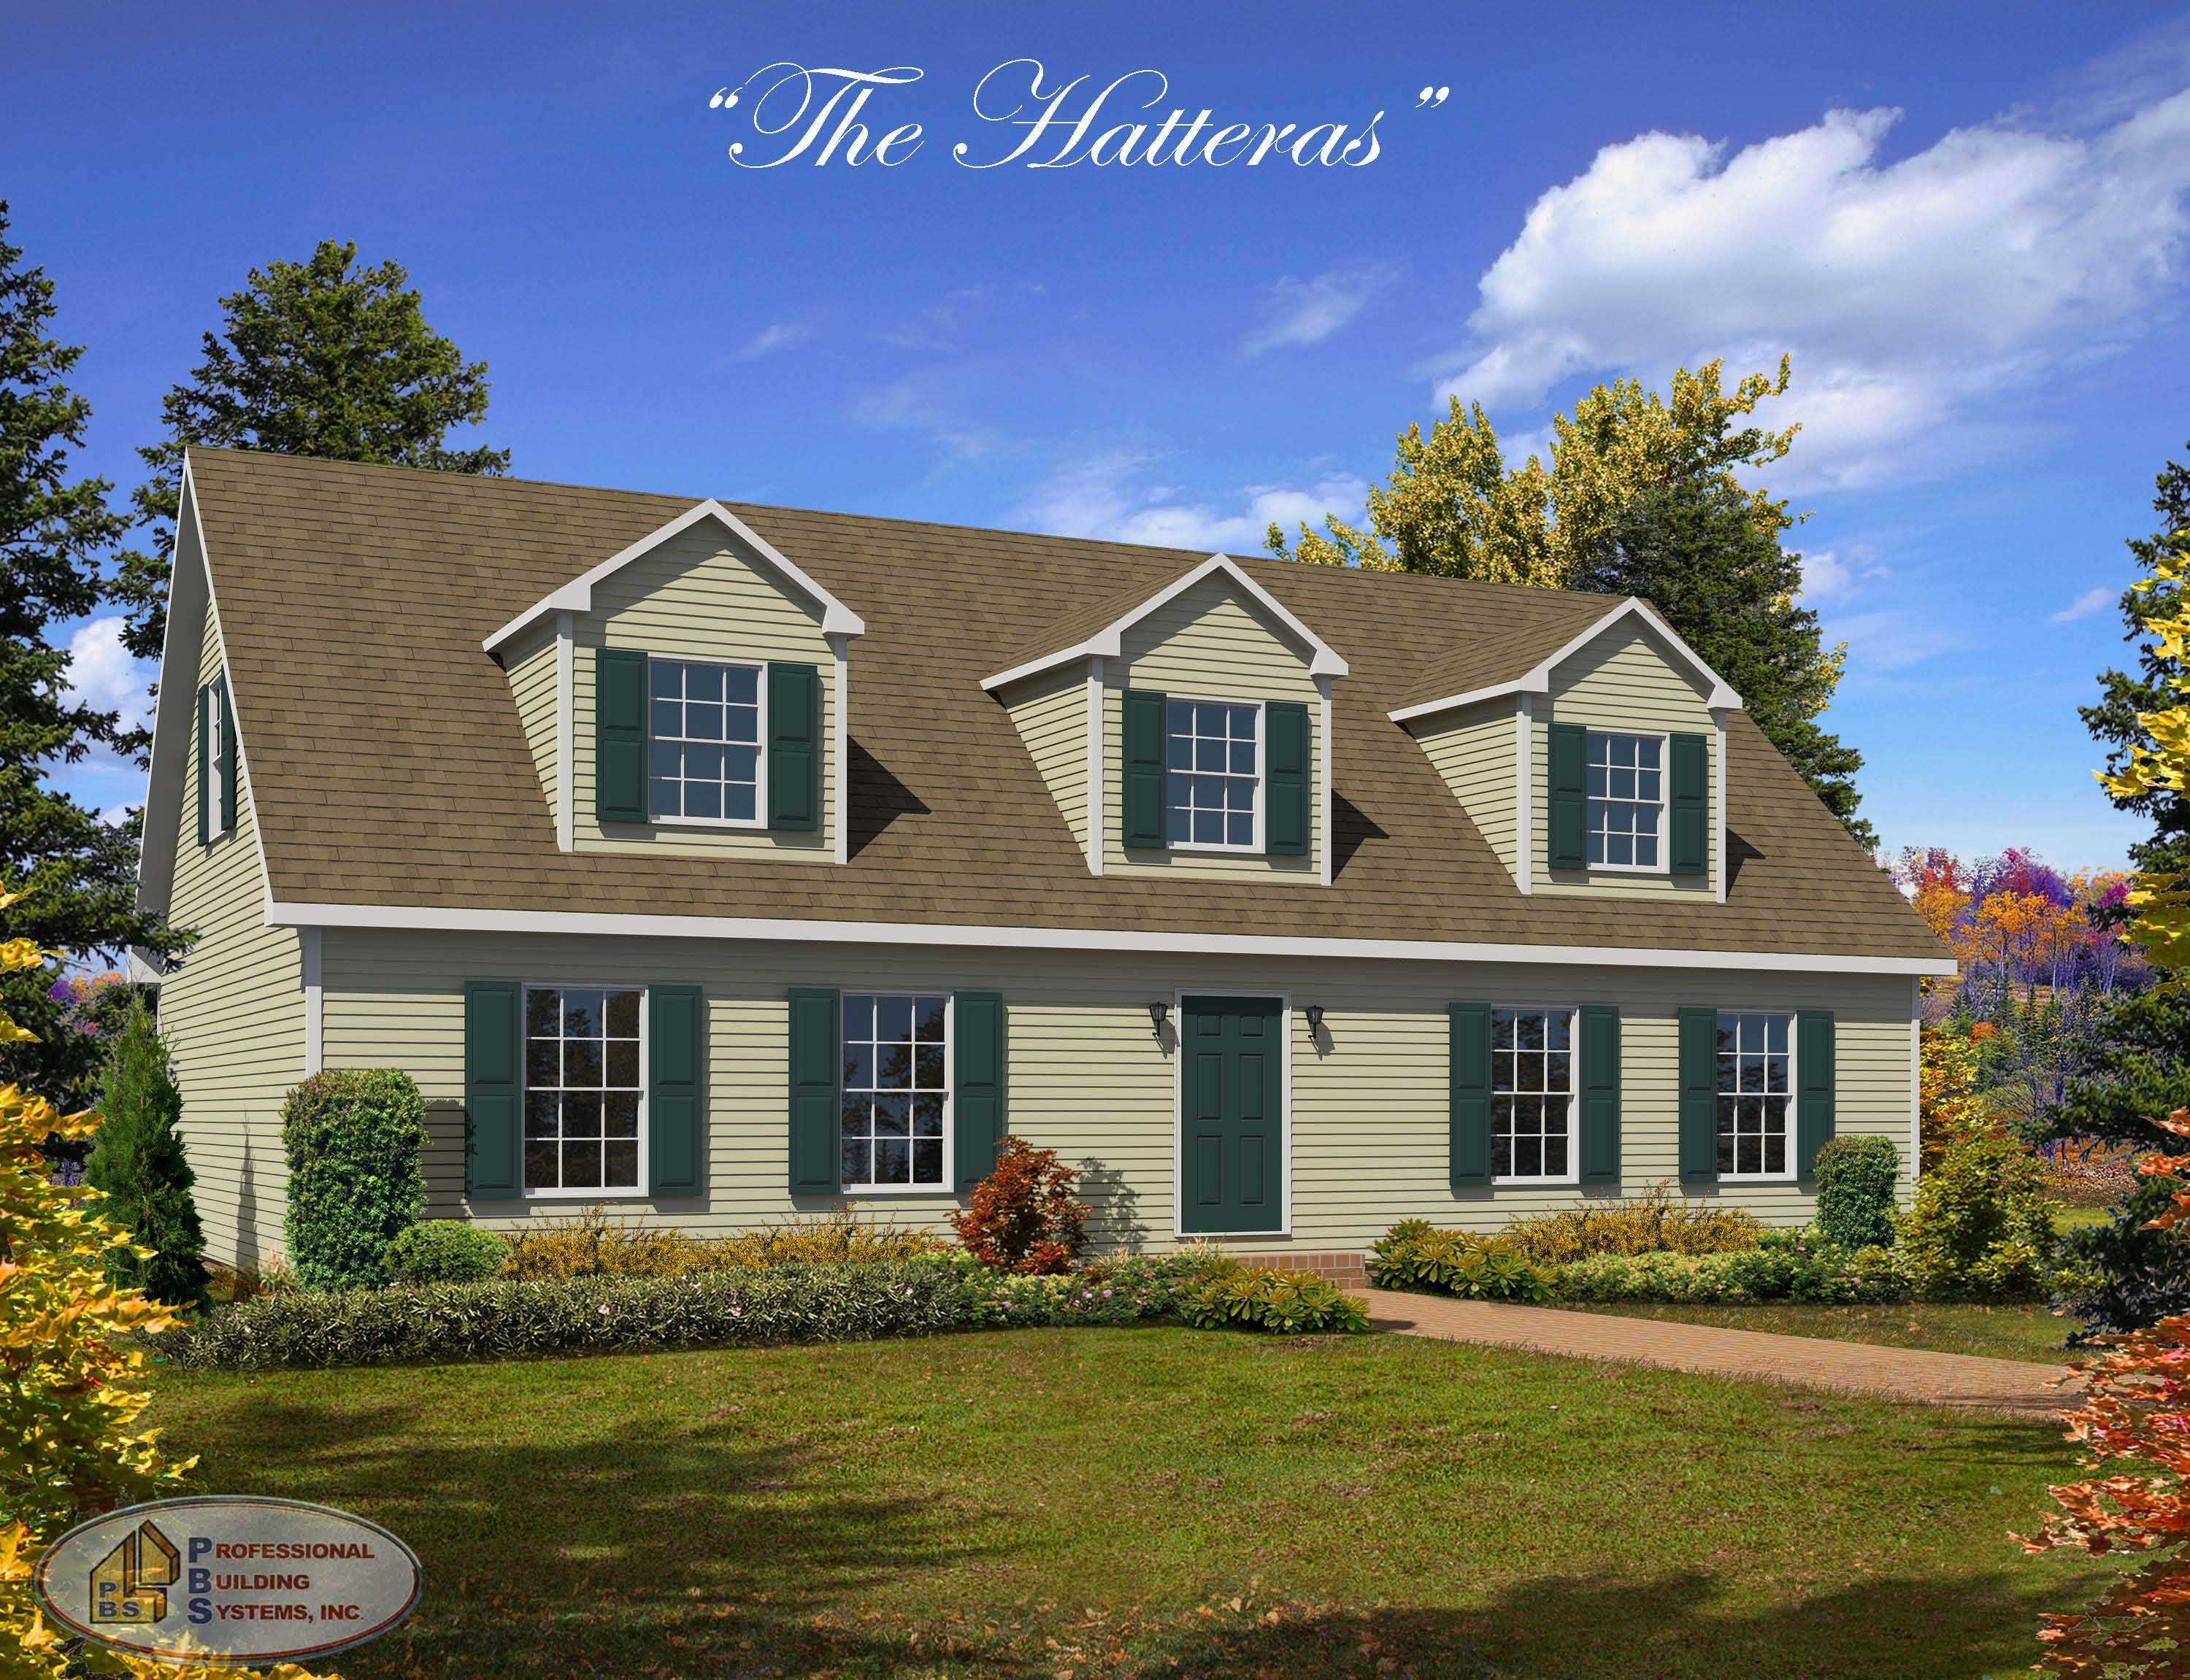 Cape hatteras montage mountain homes for Hatteras homes